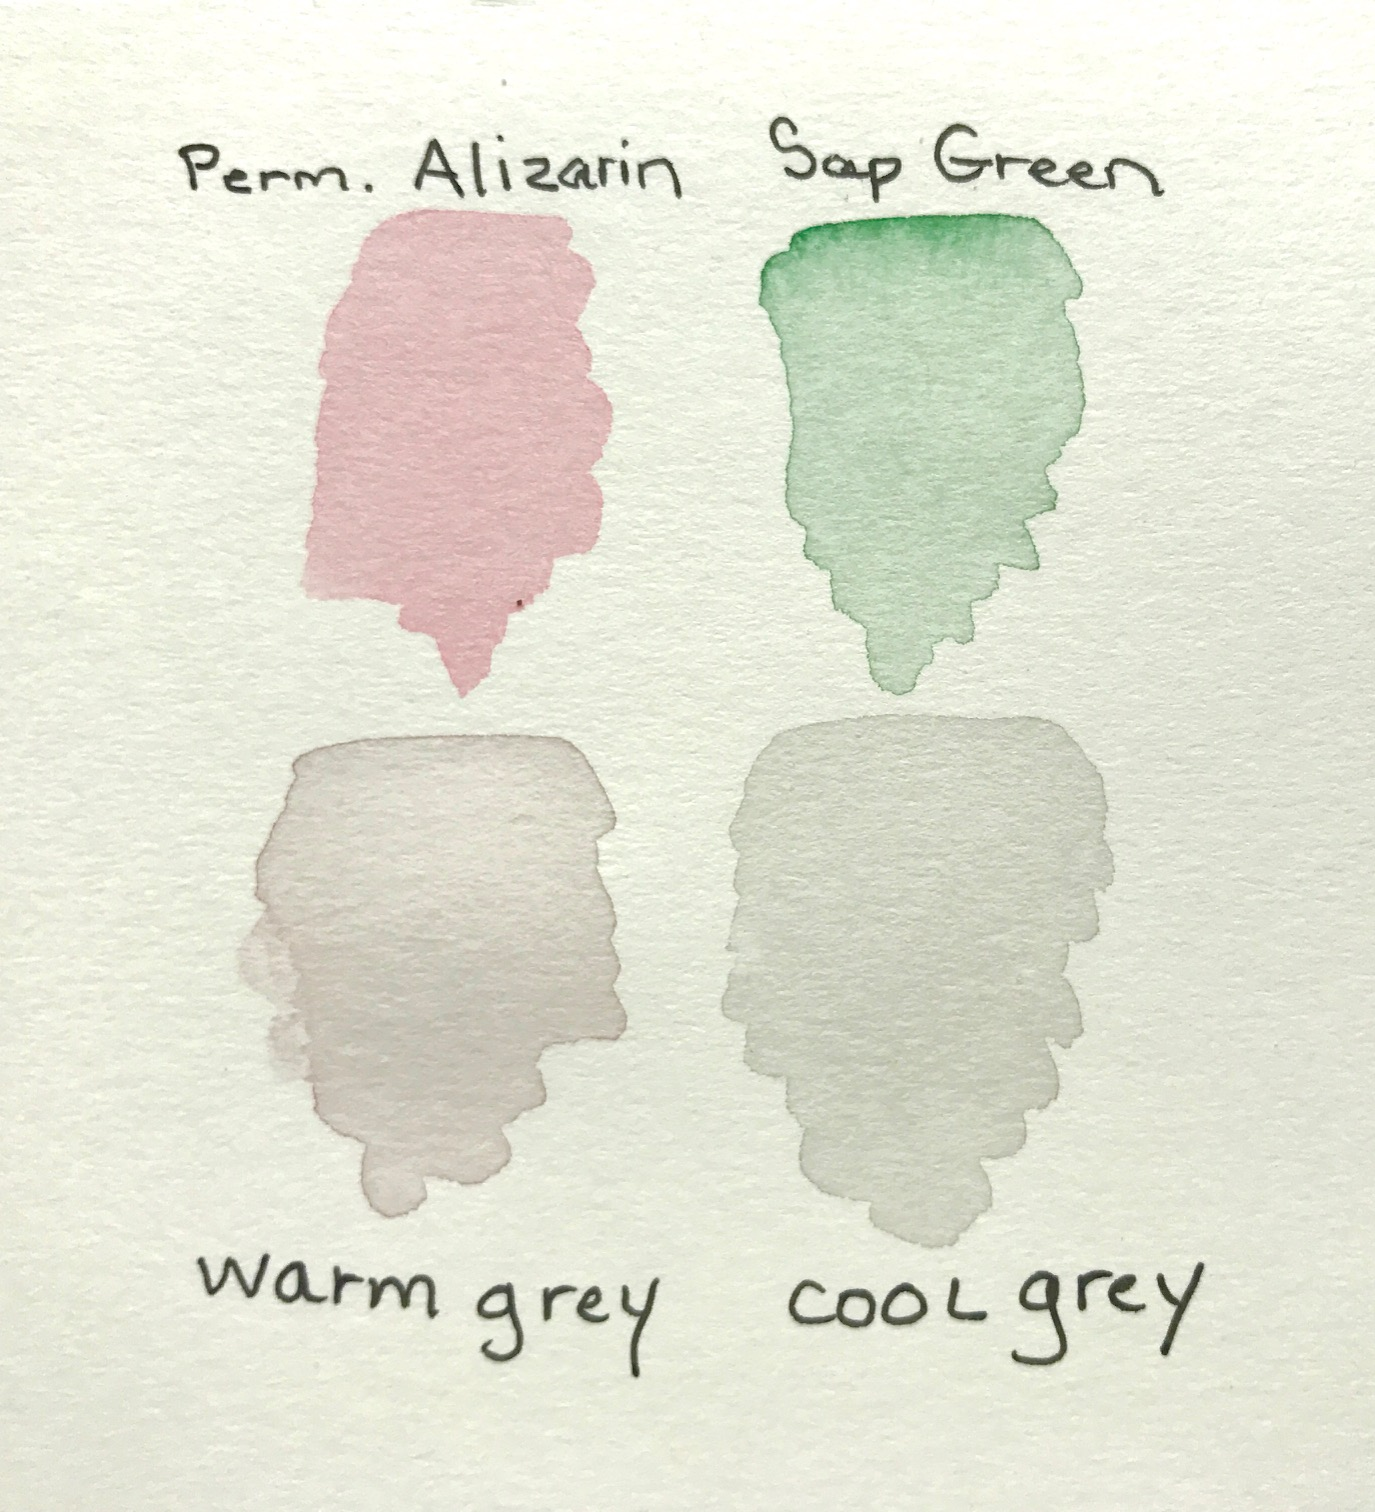 Mixing Gray from Red and Green